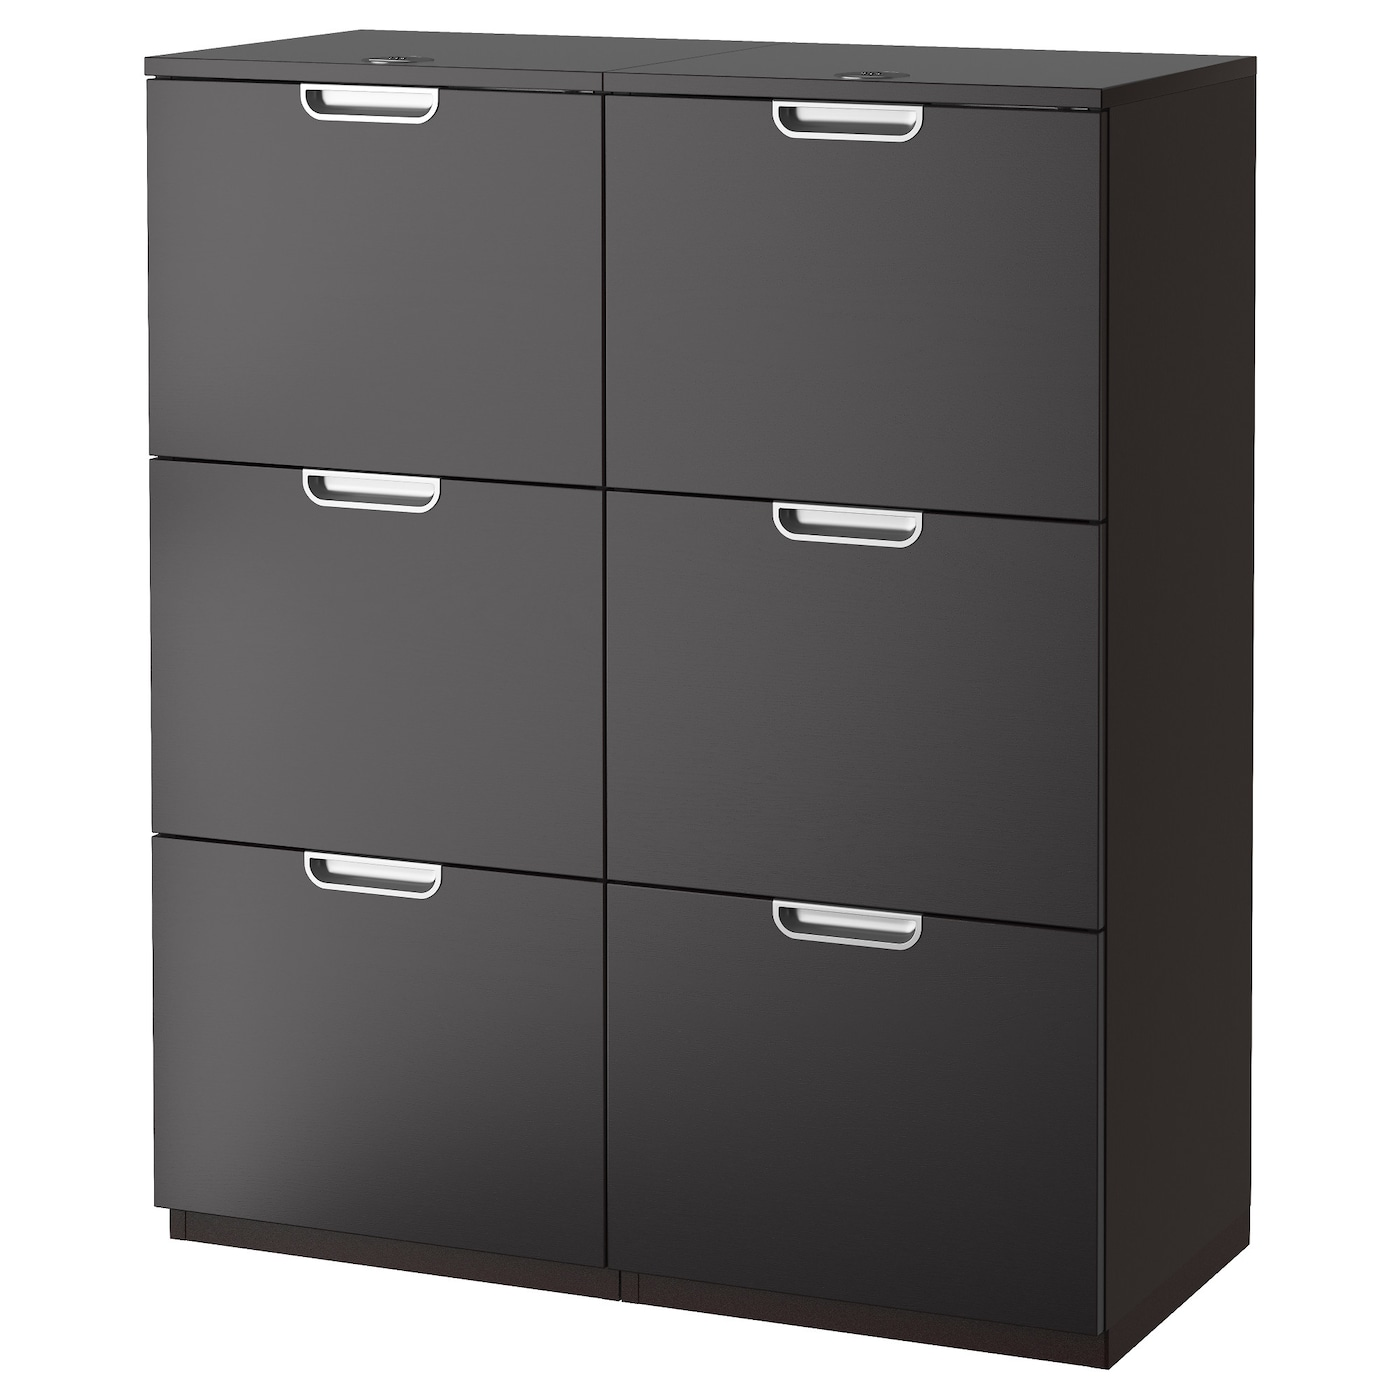 drawer product kenya filingcabinets filing cabinets uganda drawers rwanda category card cabinet